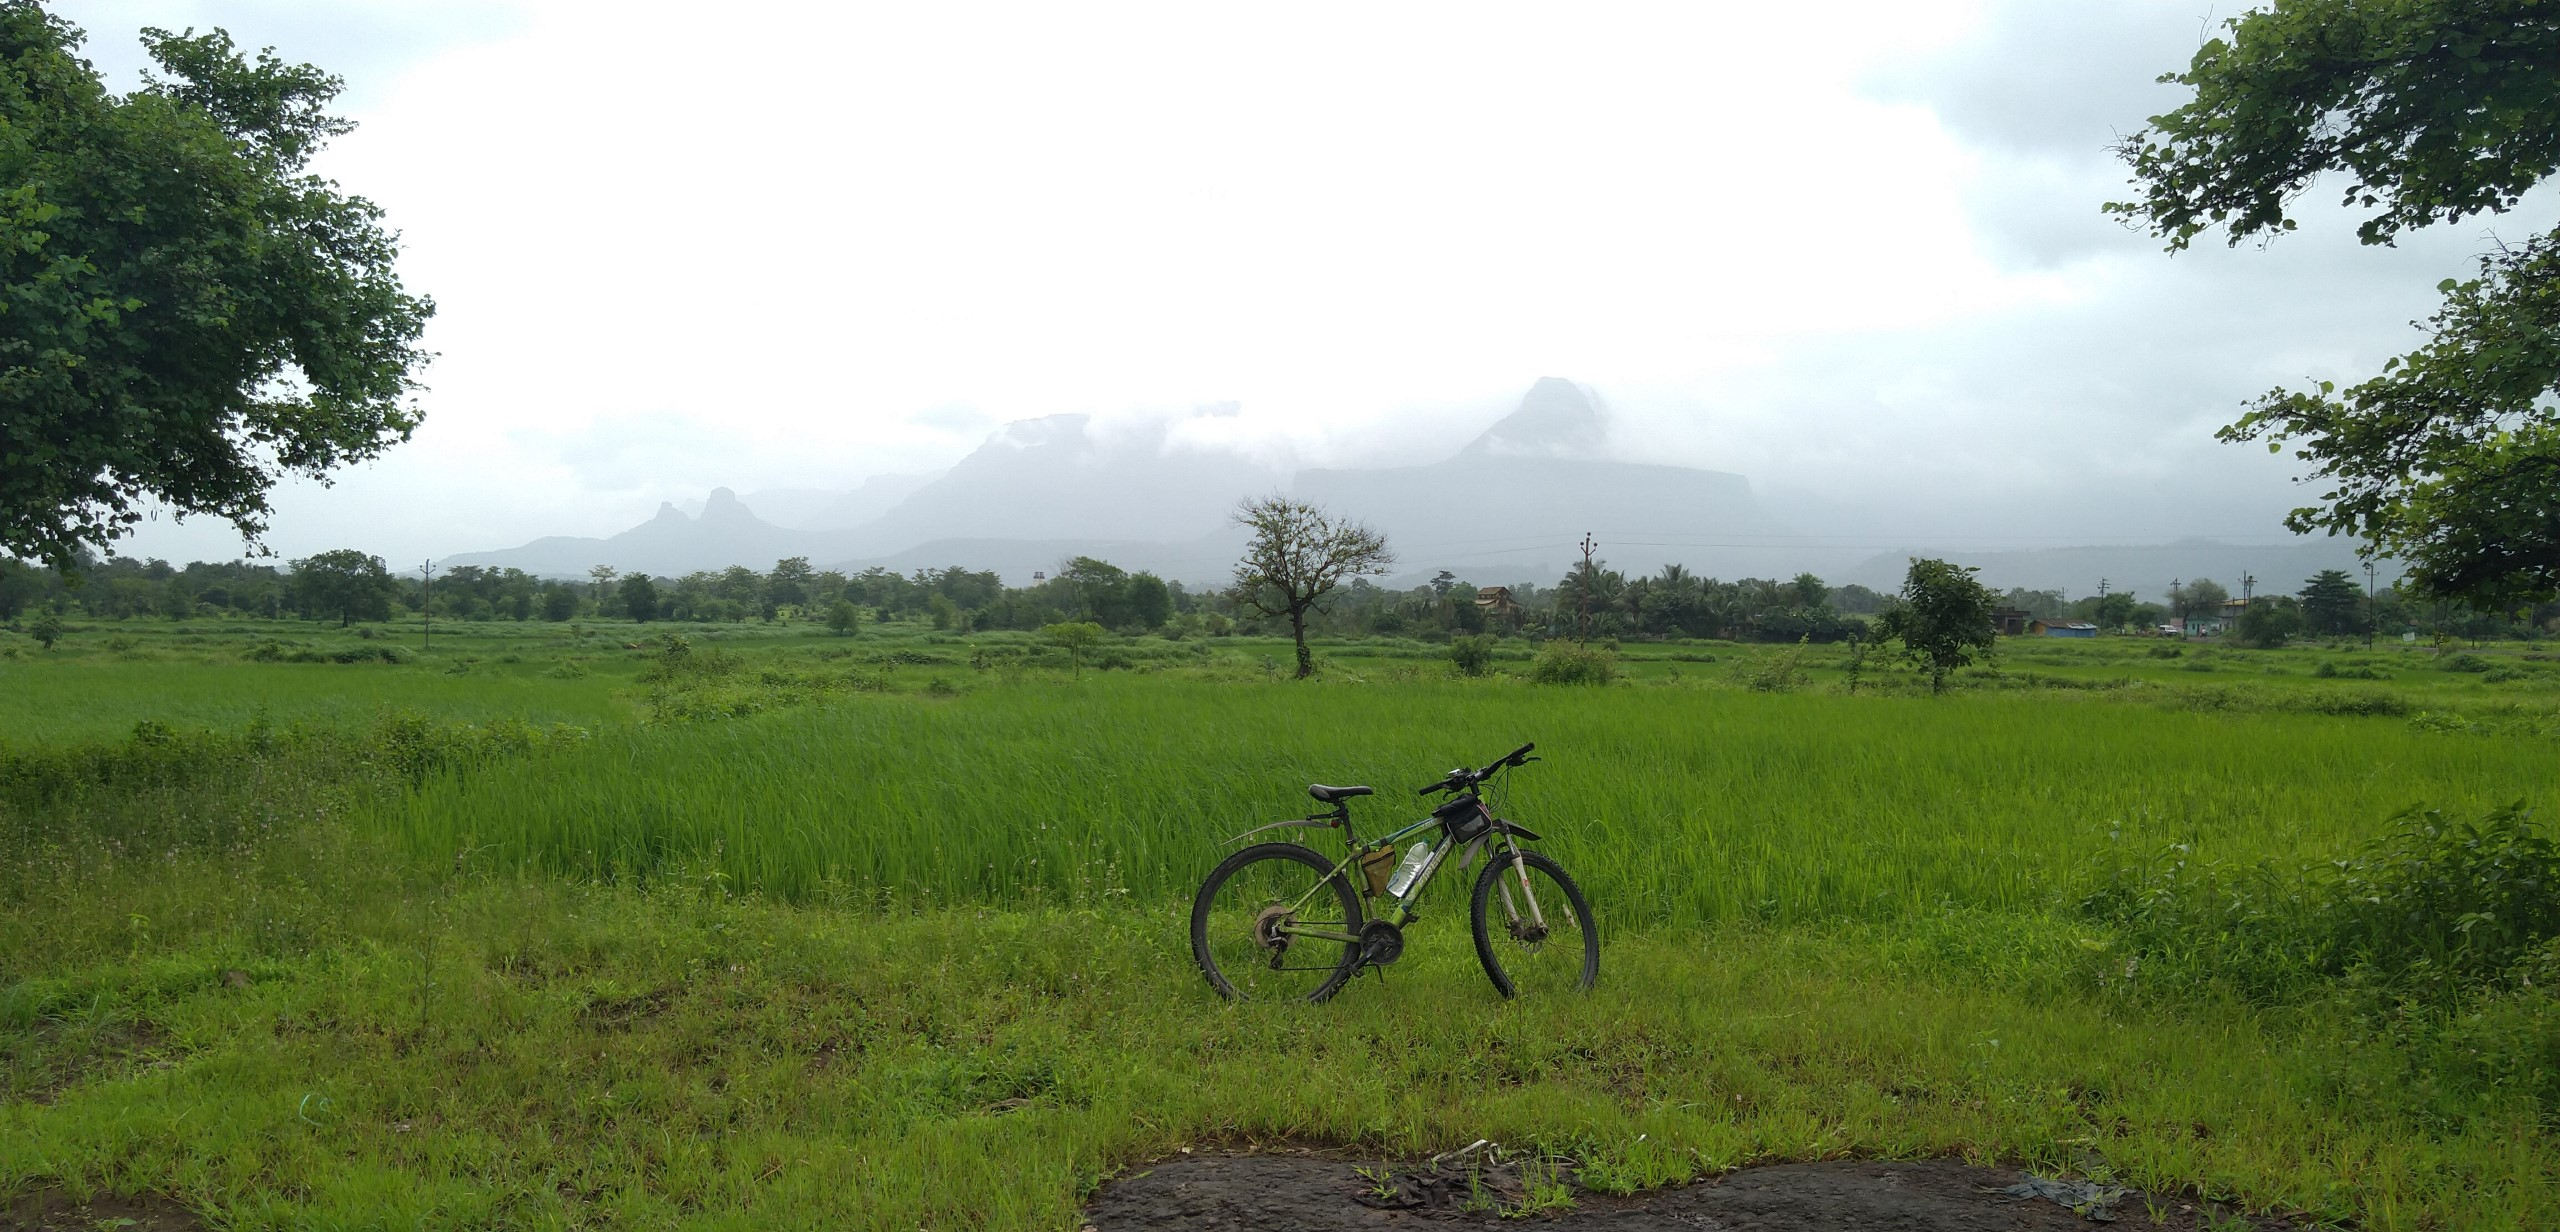 Siddhagad In The Distance